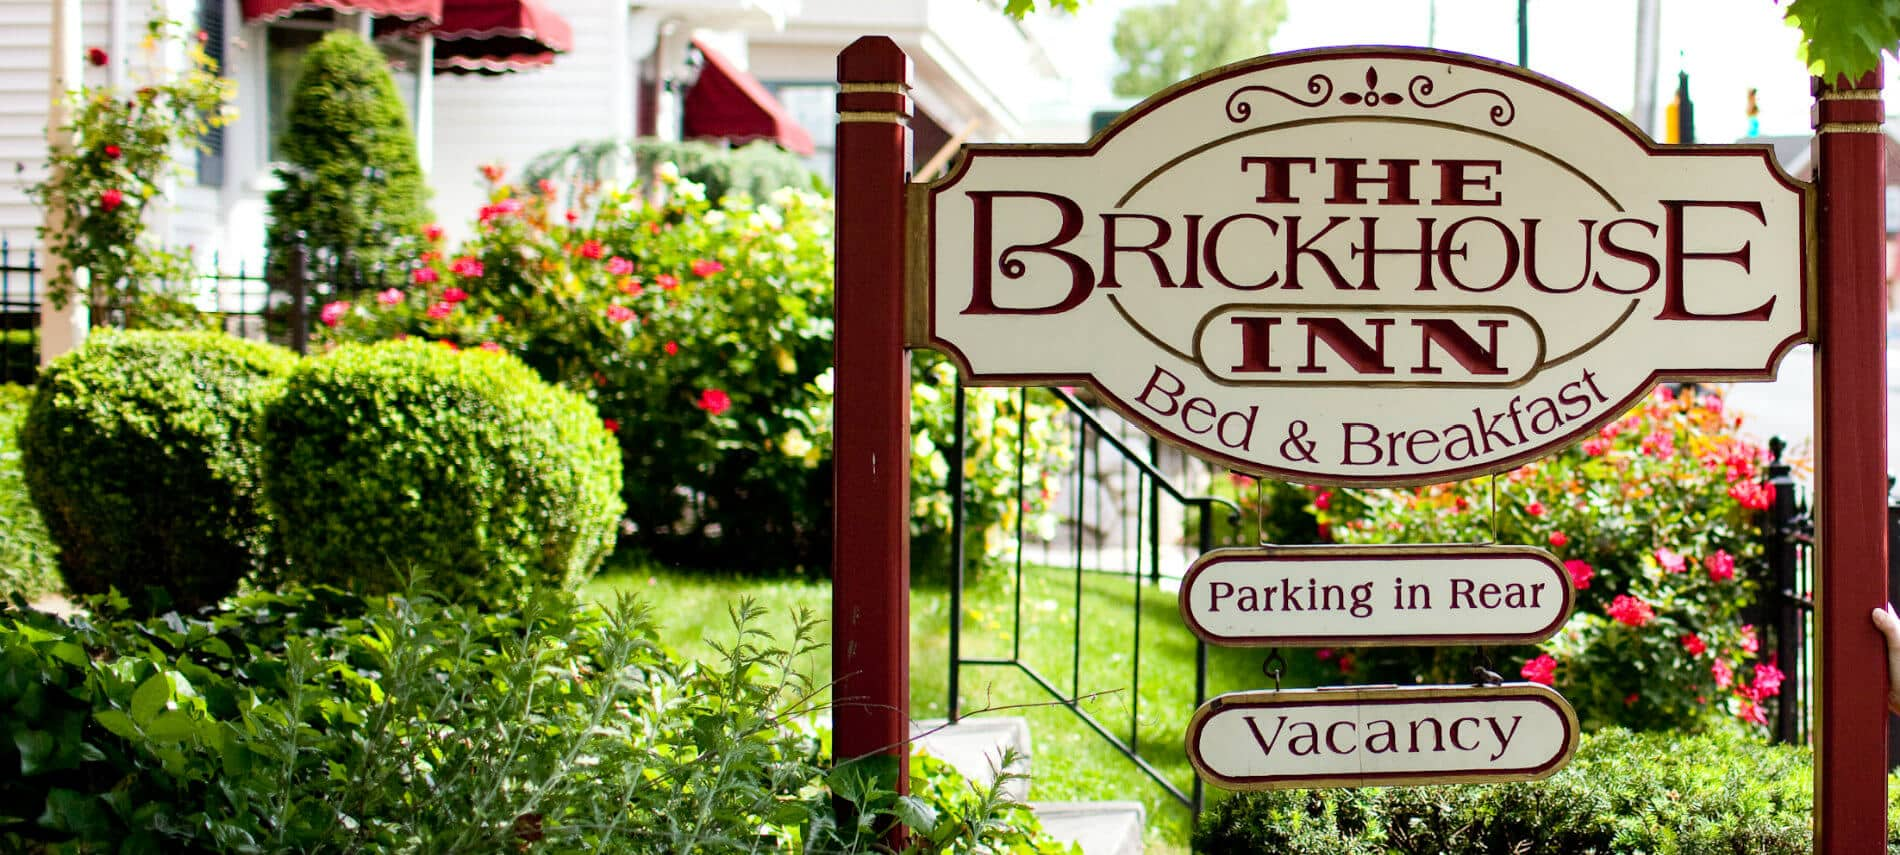 Exterior sign that reads: The Brickhouse Inn Bed & Breakfast, Parking in Rear, Vacancy